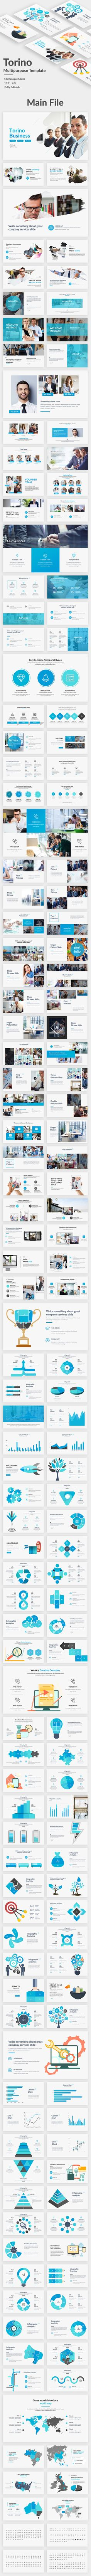 Torino Multipurpose Powerpoint Template - Business PowerPoint Templates